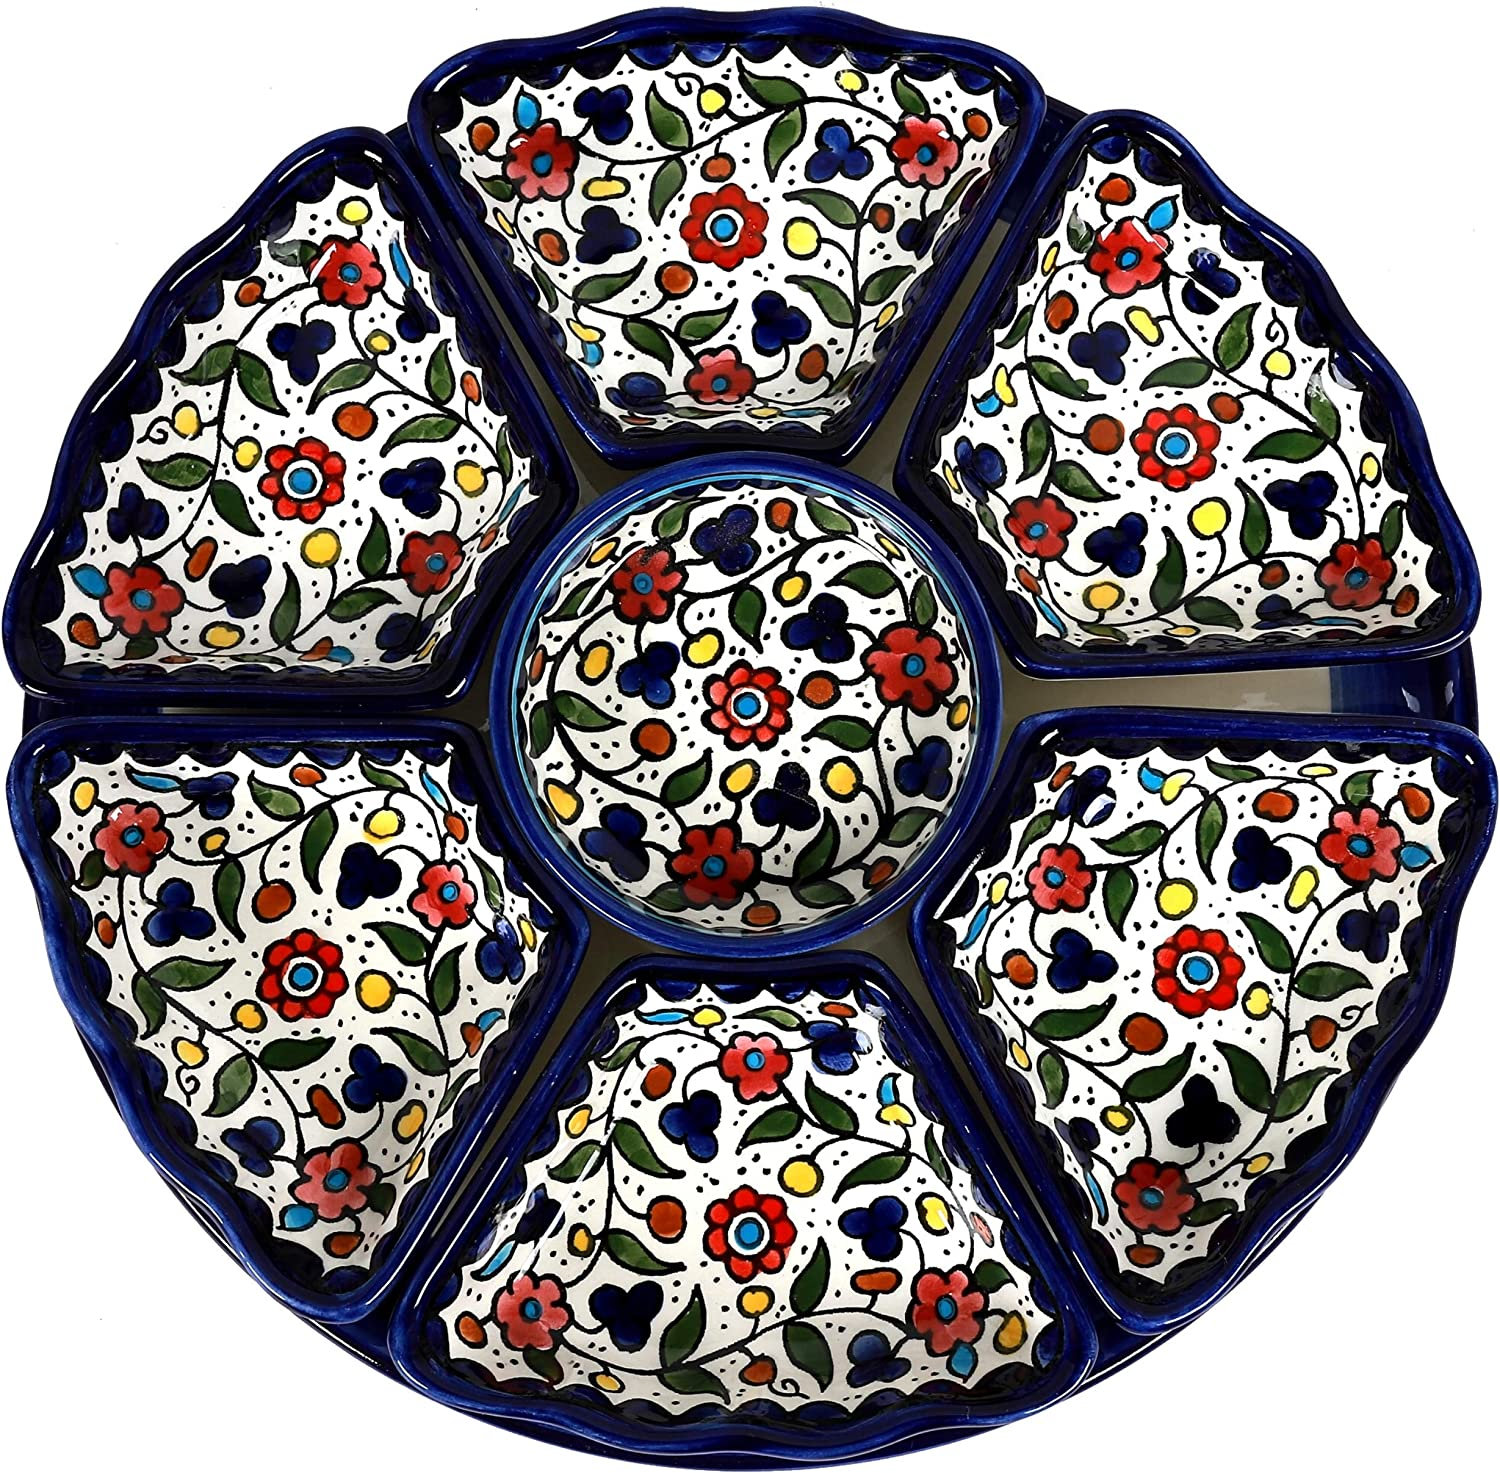 """Oriental Arts Round Ceramic 8 piece Serving Platters- Handmade Serving Dishes, Divided Serving Trays for Party, Chip and dip serving set for Appetizers, Veggies, Candy and Snacks(Large 13.2"""", Multi)"""